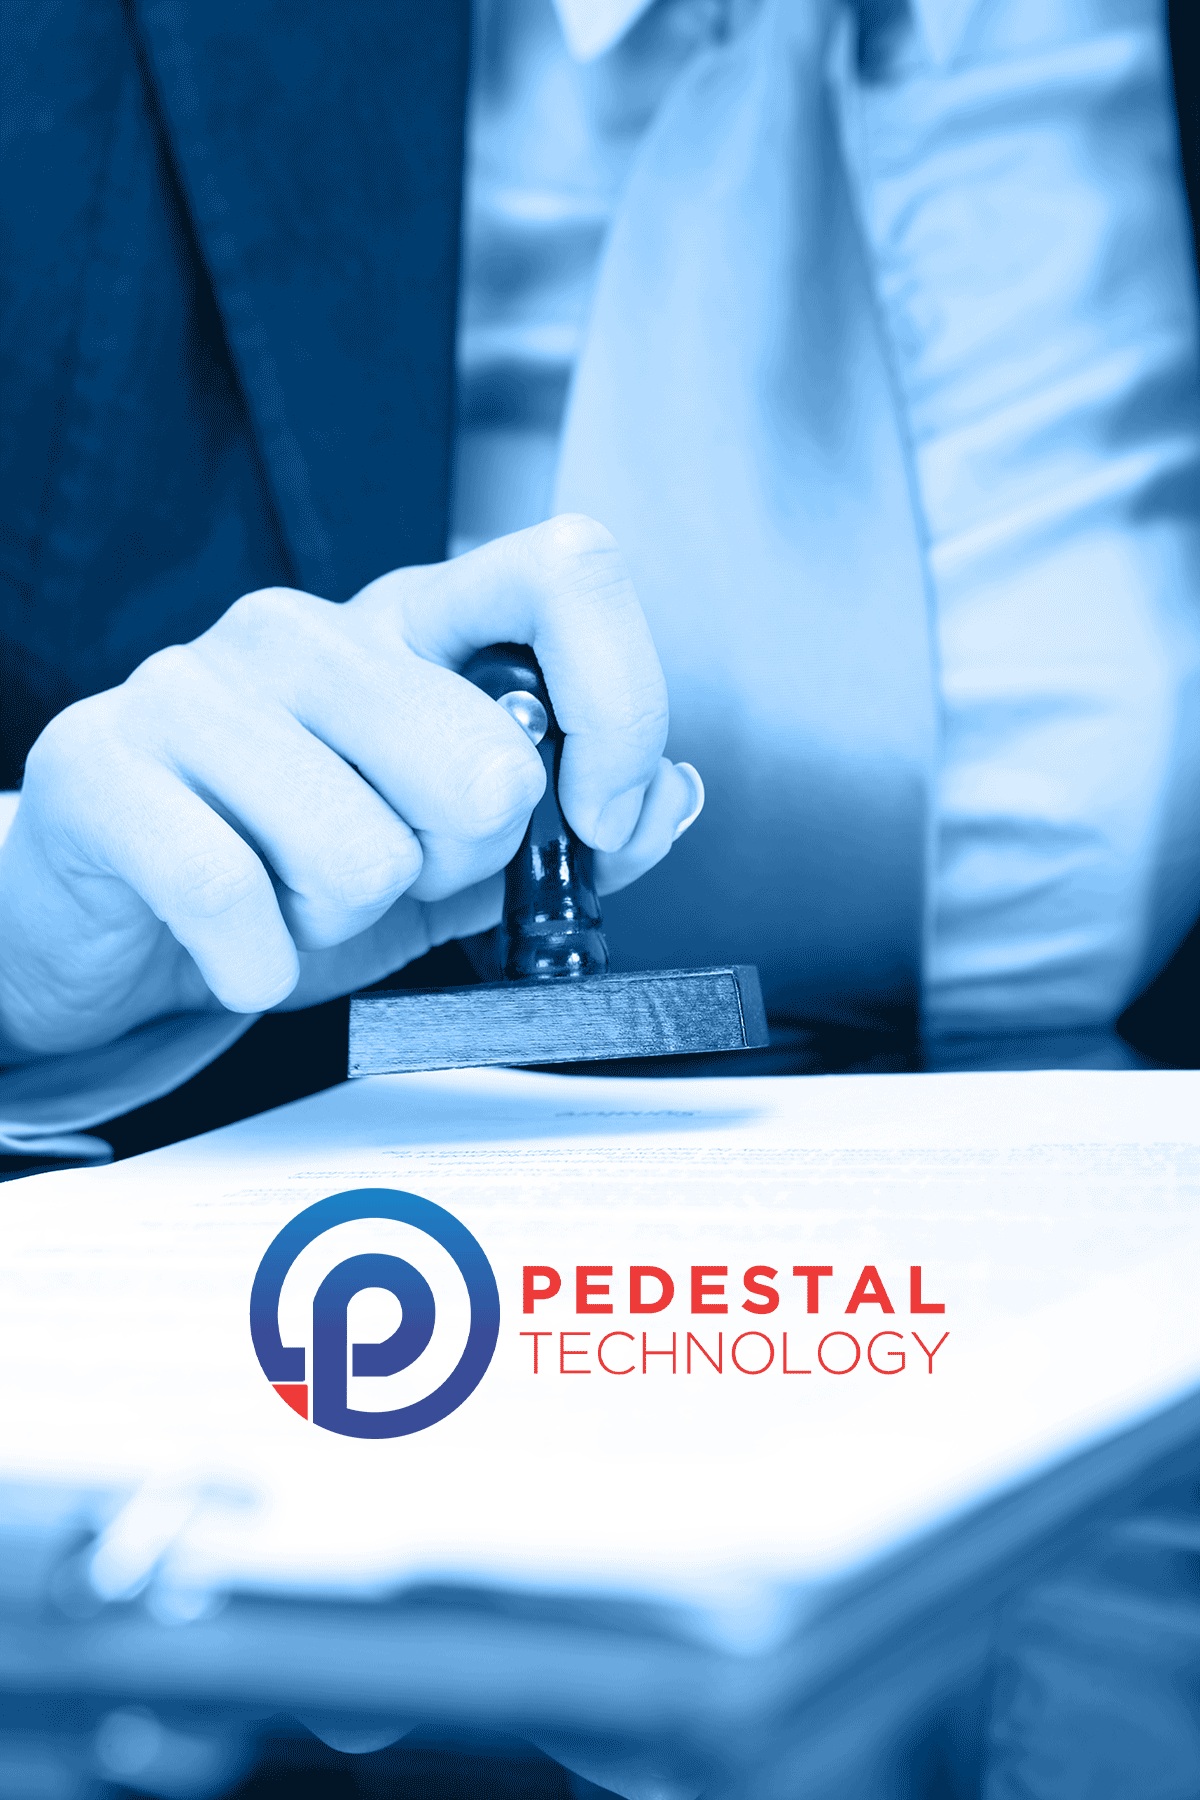 Pedestal Technology Certifications